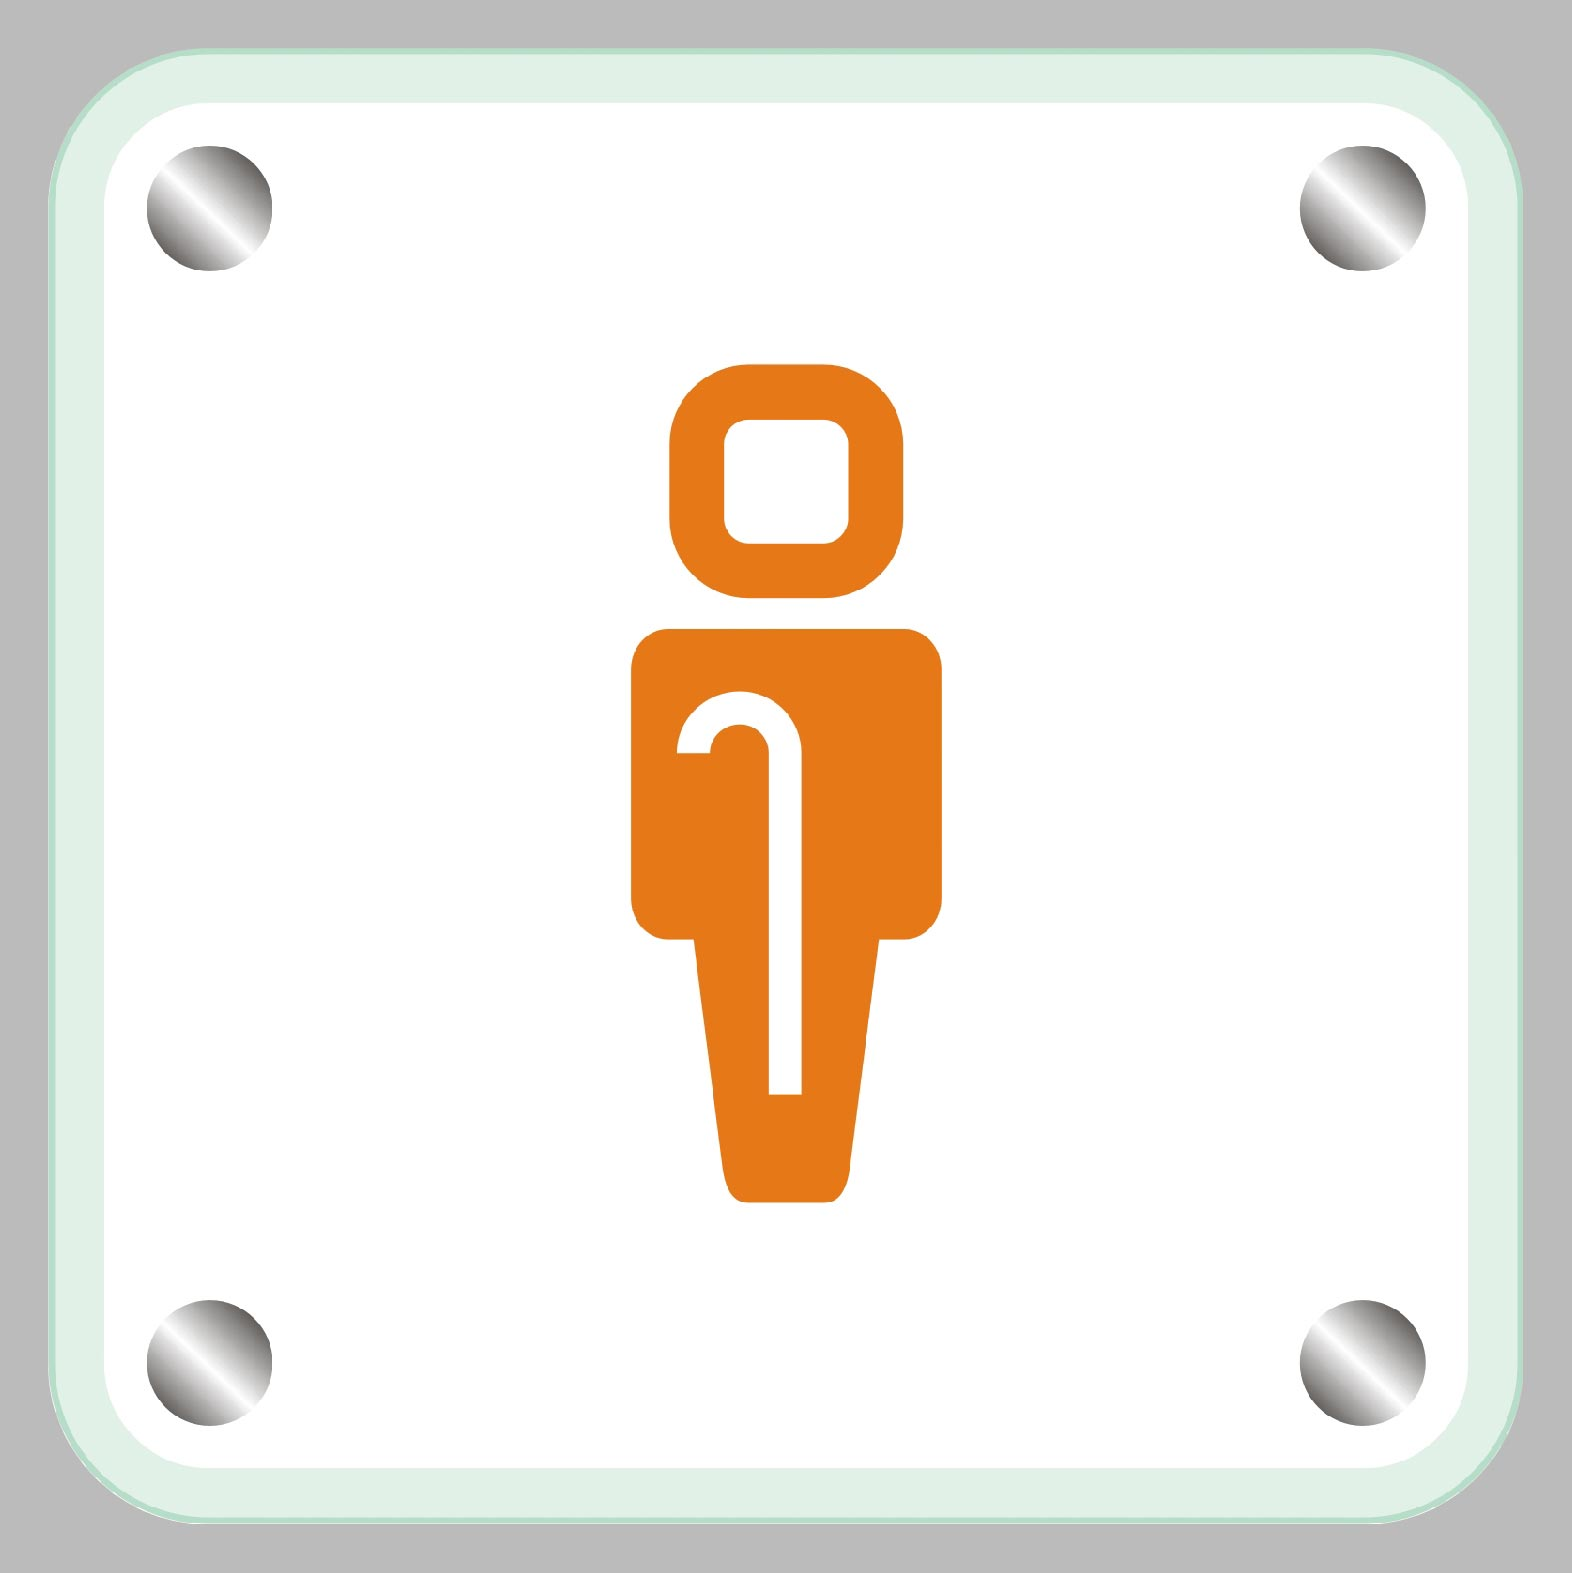 Accesible / Disabled door sign